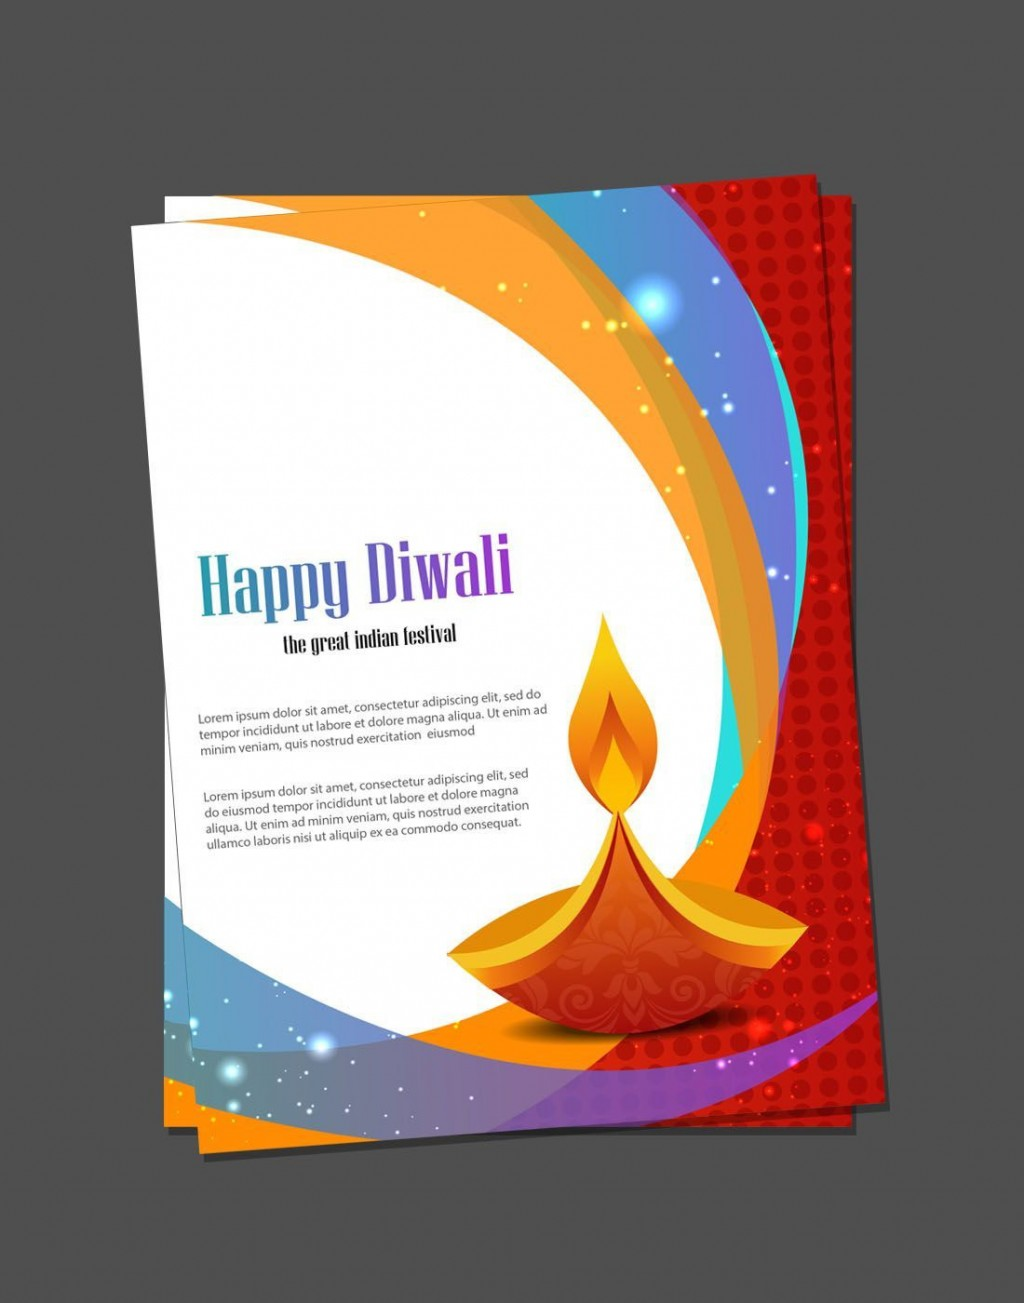 002 Shocking Diwali Party Invite Template Free High Def Large